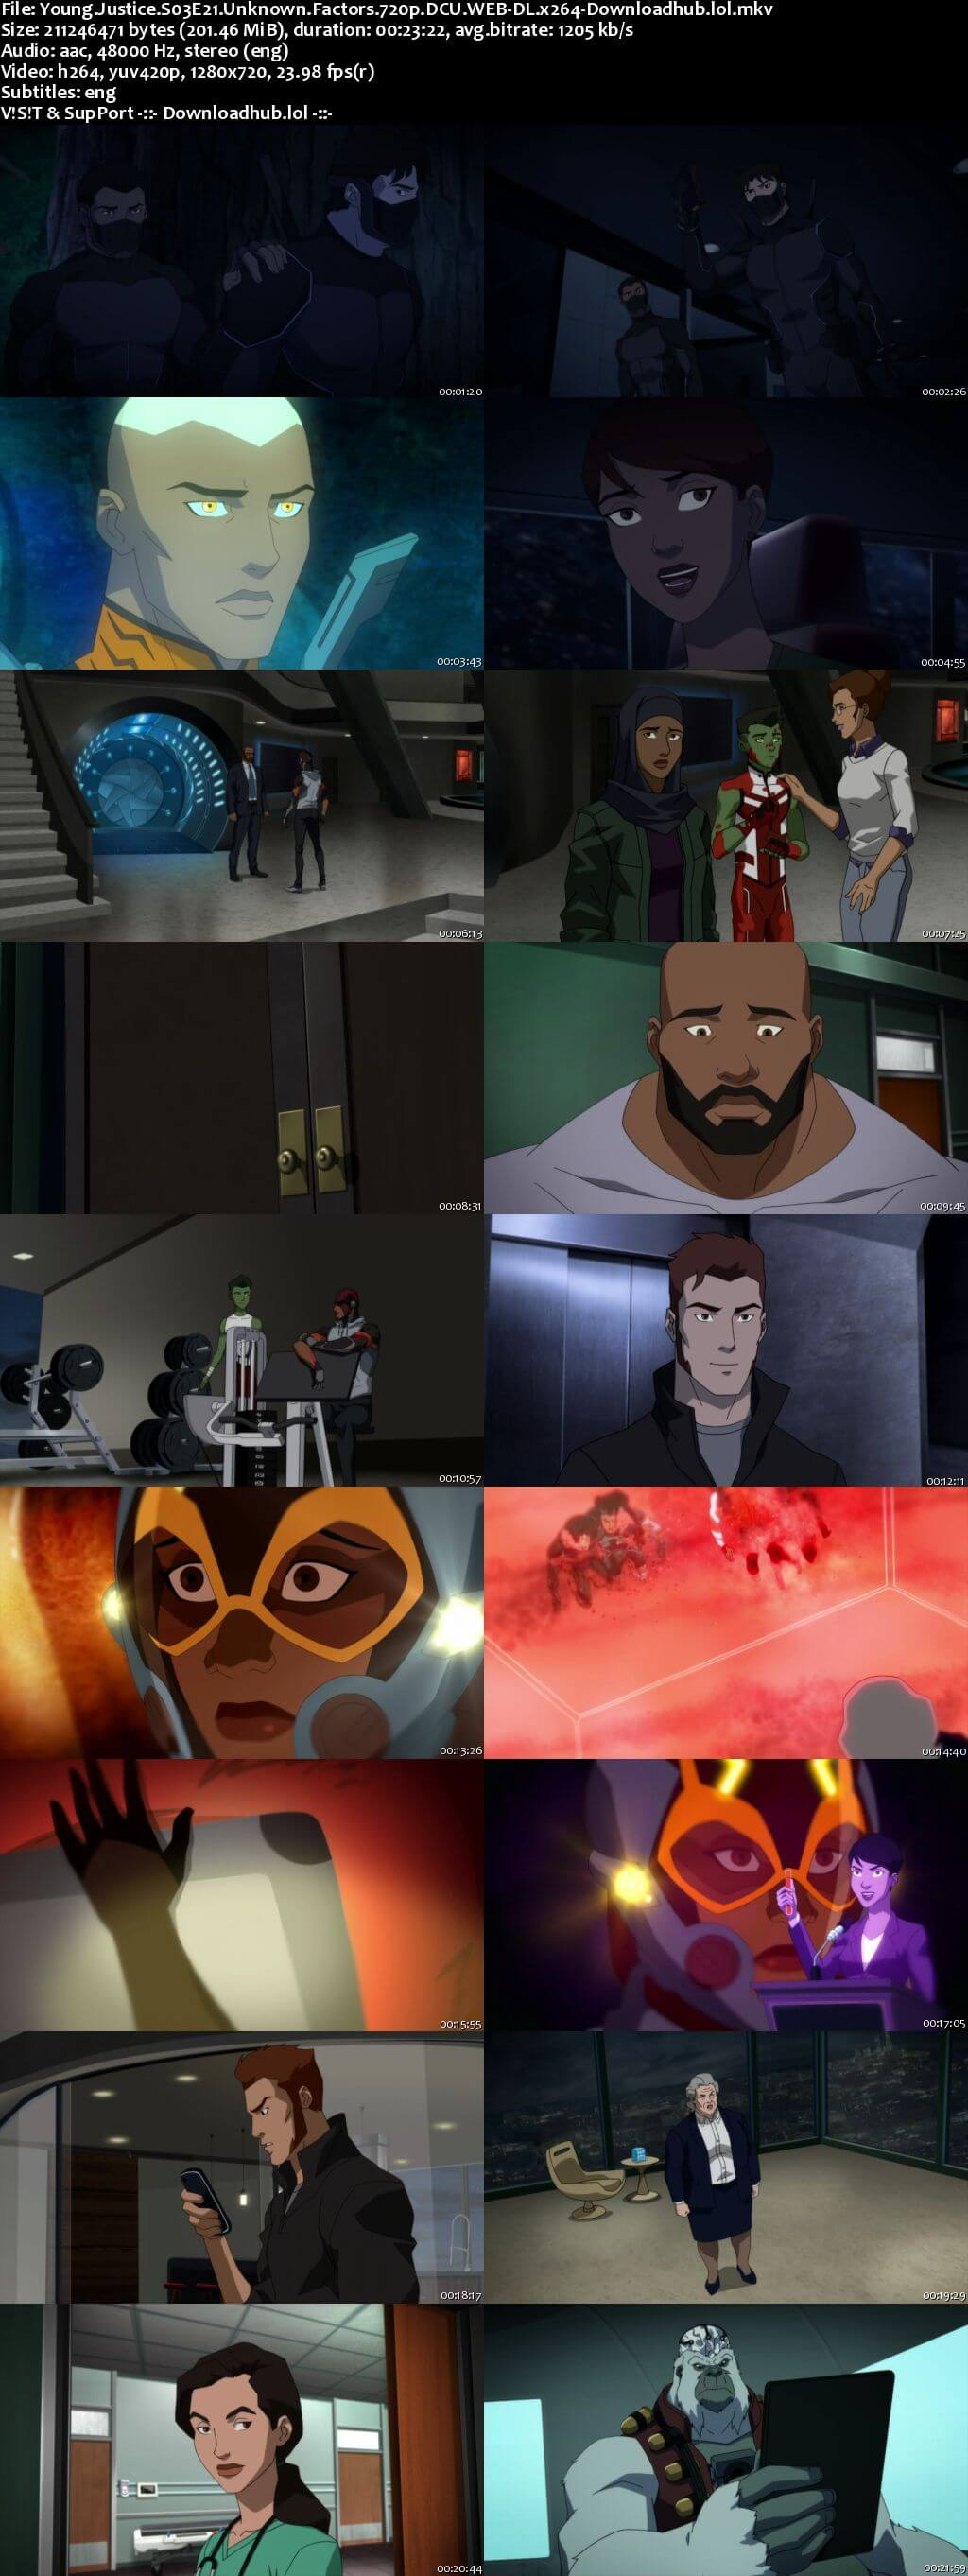 Young Justice S03E21 200MB DCU WEB-DL 720p ESubs